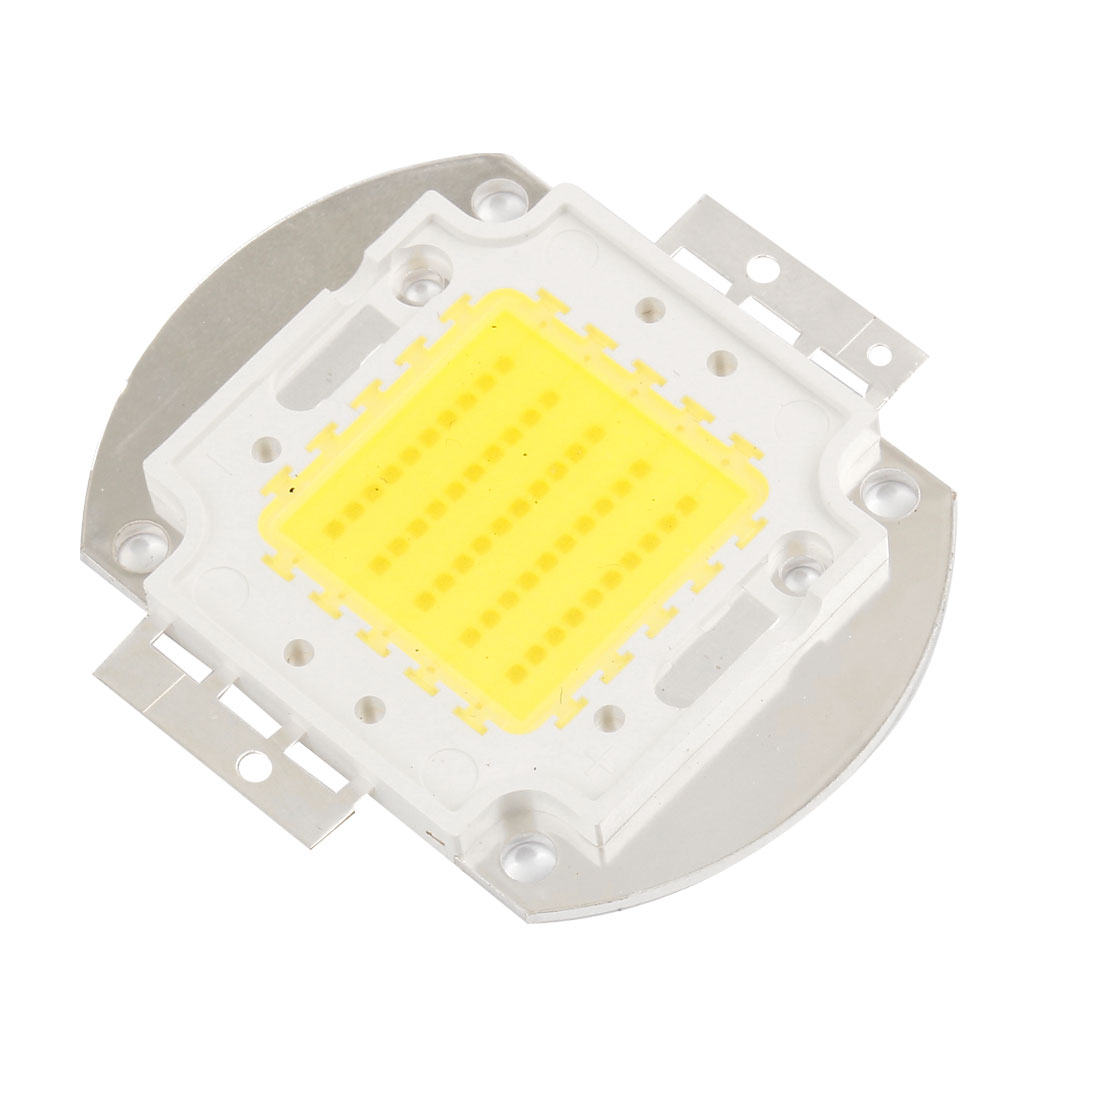 32-34V 1750mA 50W Pure White Light High Power SMD LED Chip Lamp Bulb